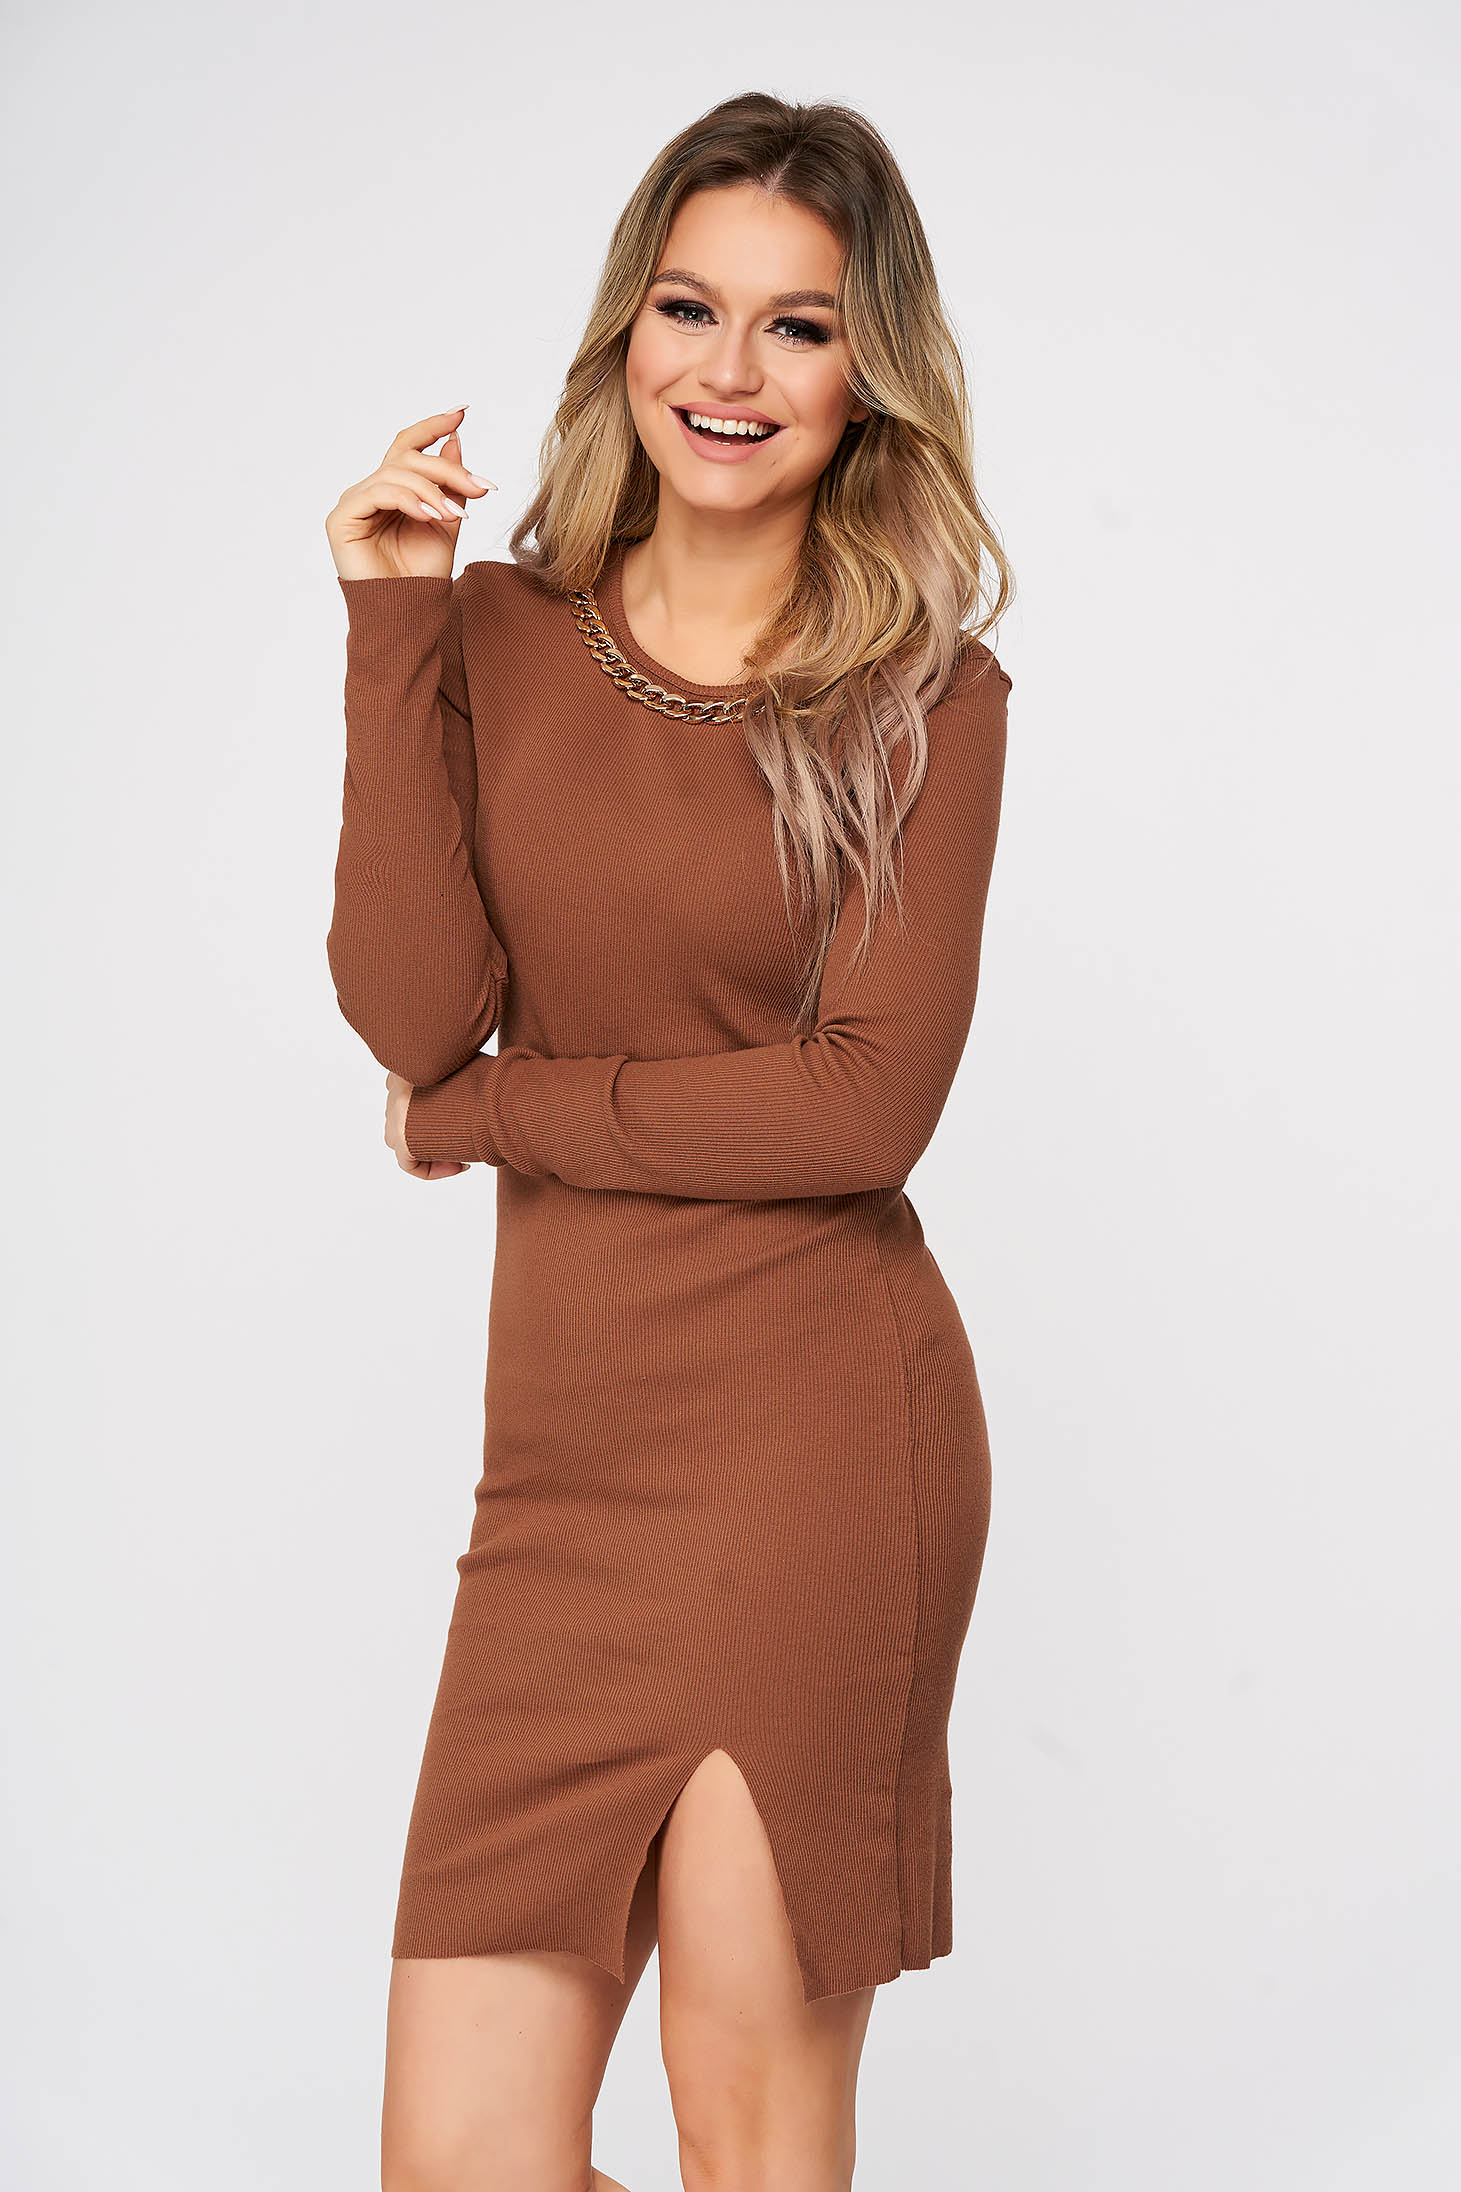 Brown dress casual short cut pencil accessorized with chain from striped fabric